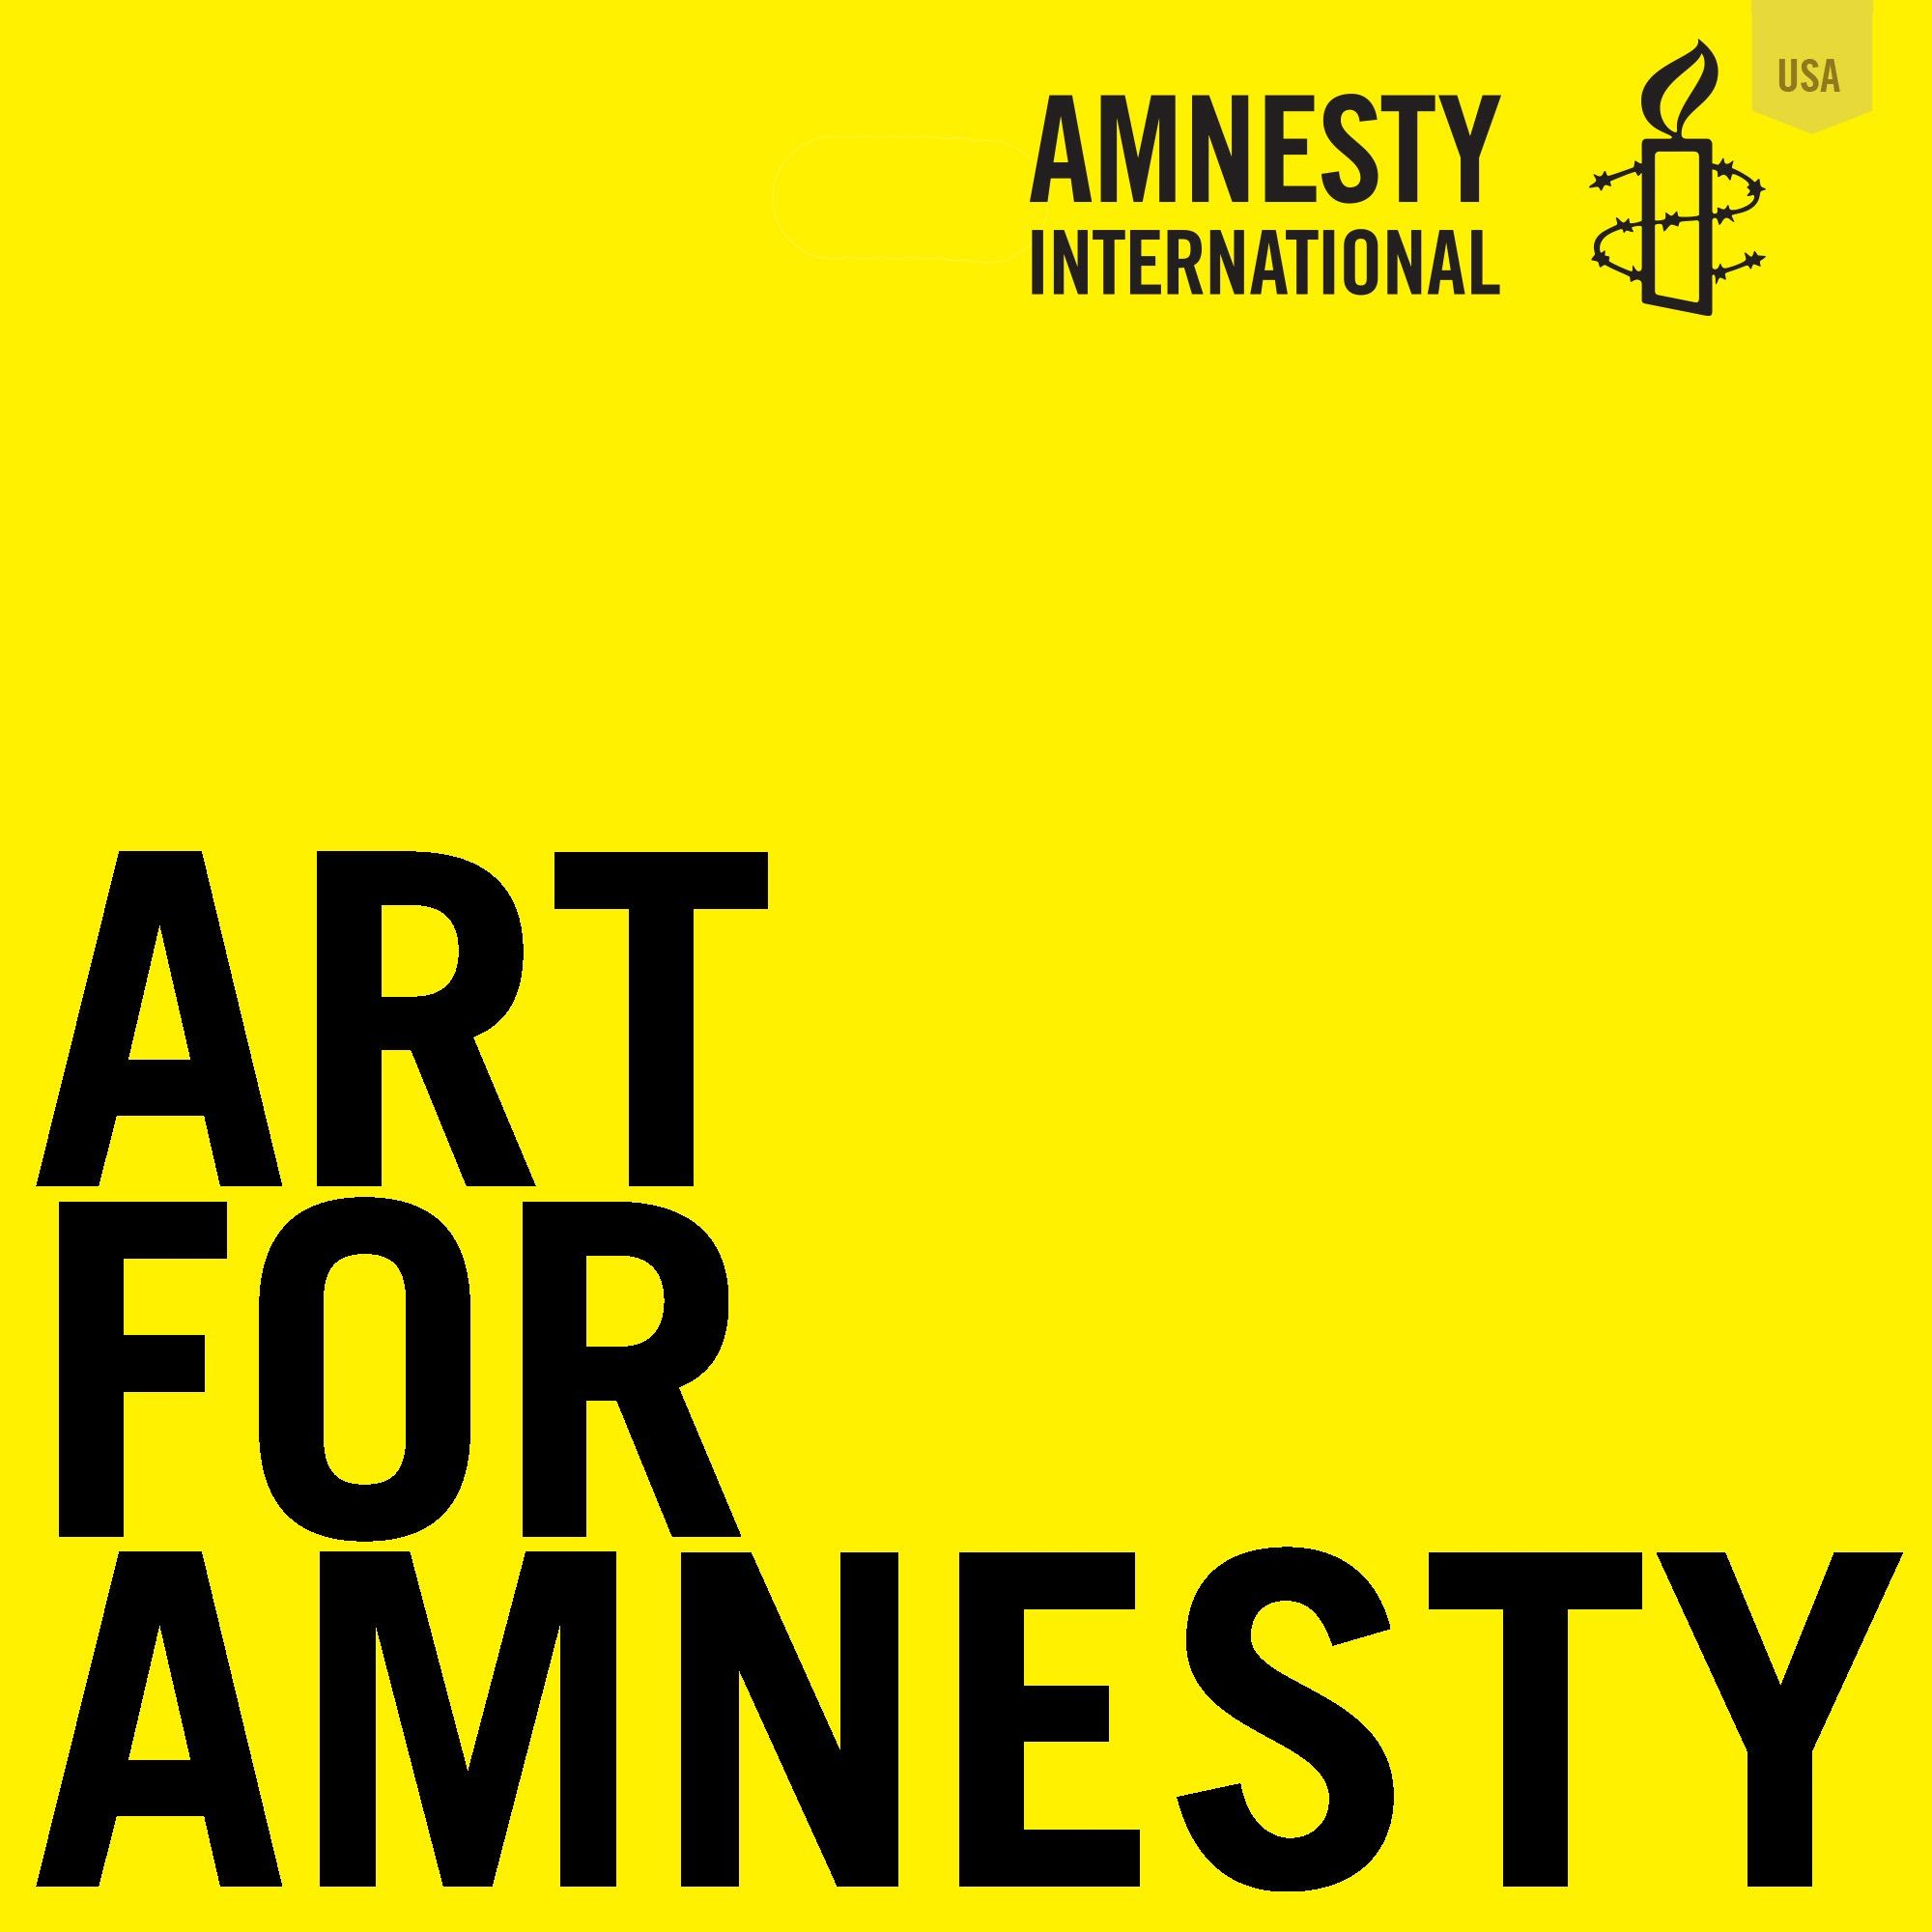 art_for_amnesty.jpg